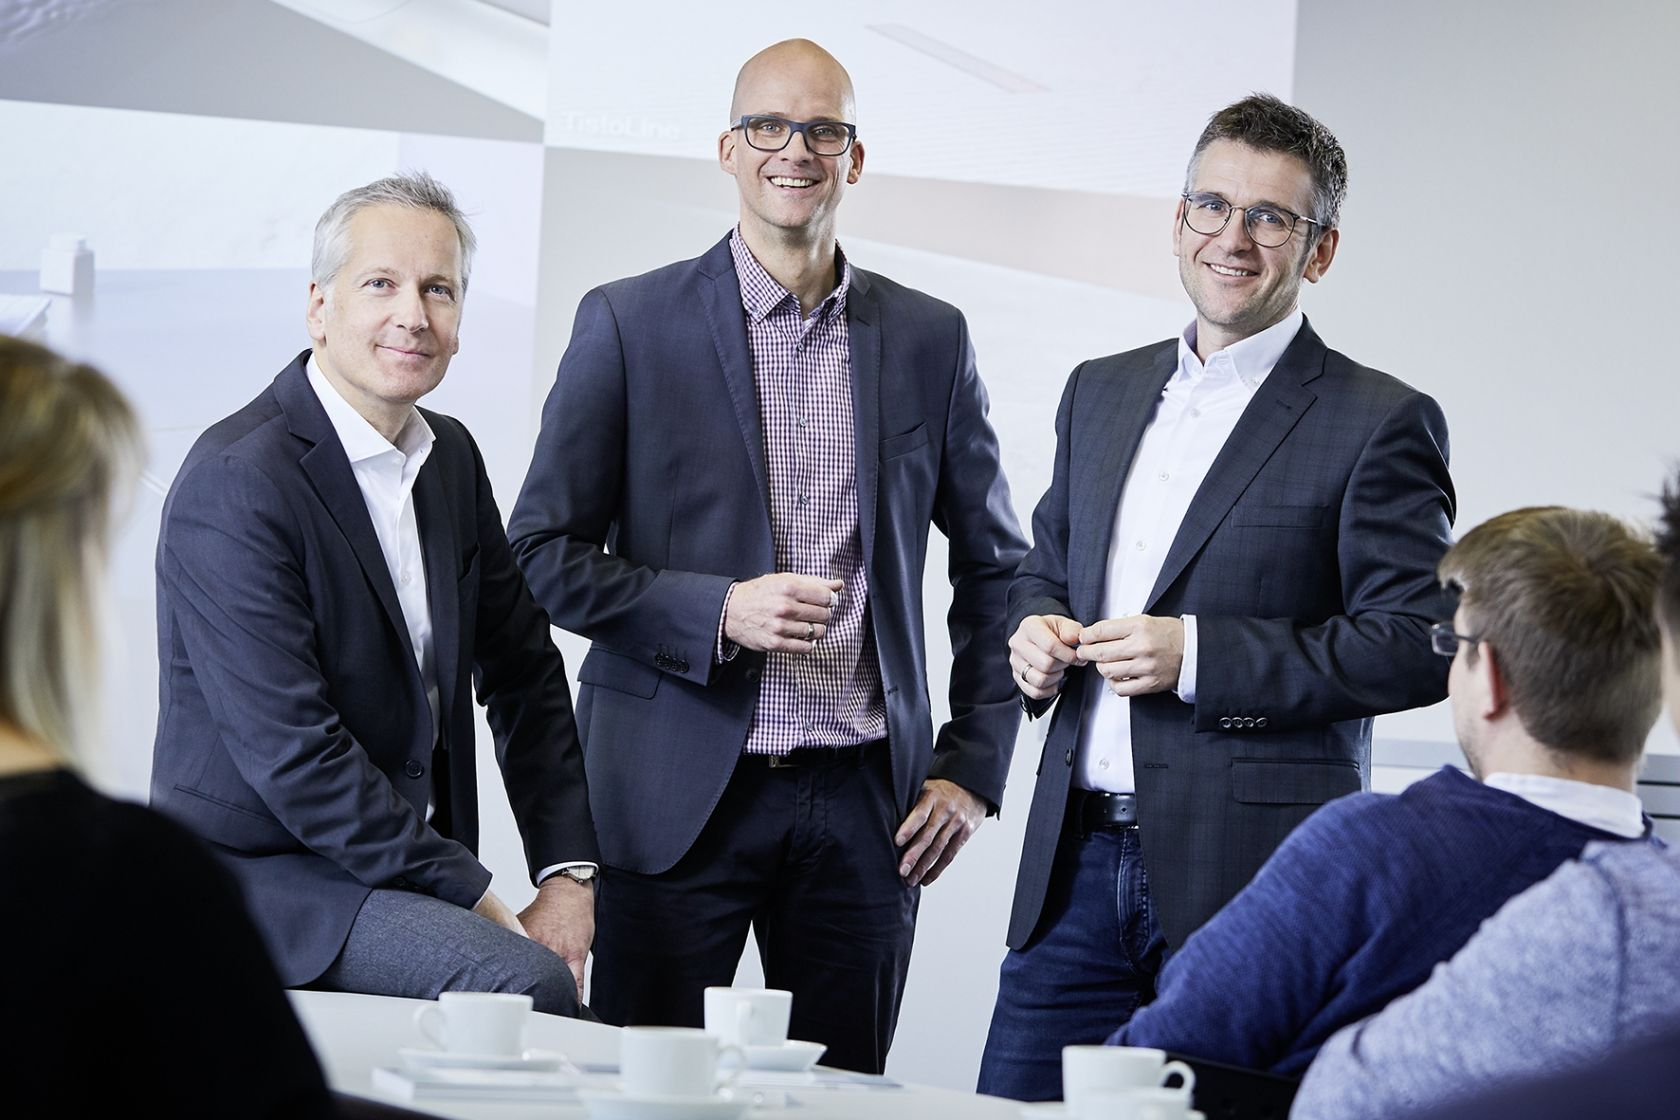 The next round of the series of seminars by the companies Dallmer, Rehau and Keuco will begin on 7 May 2019. In a total of seven events, the experts will give tips on the topic of bathrooms.